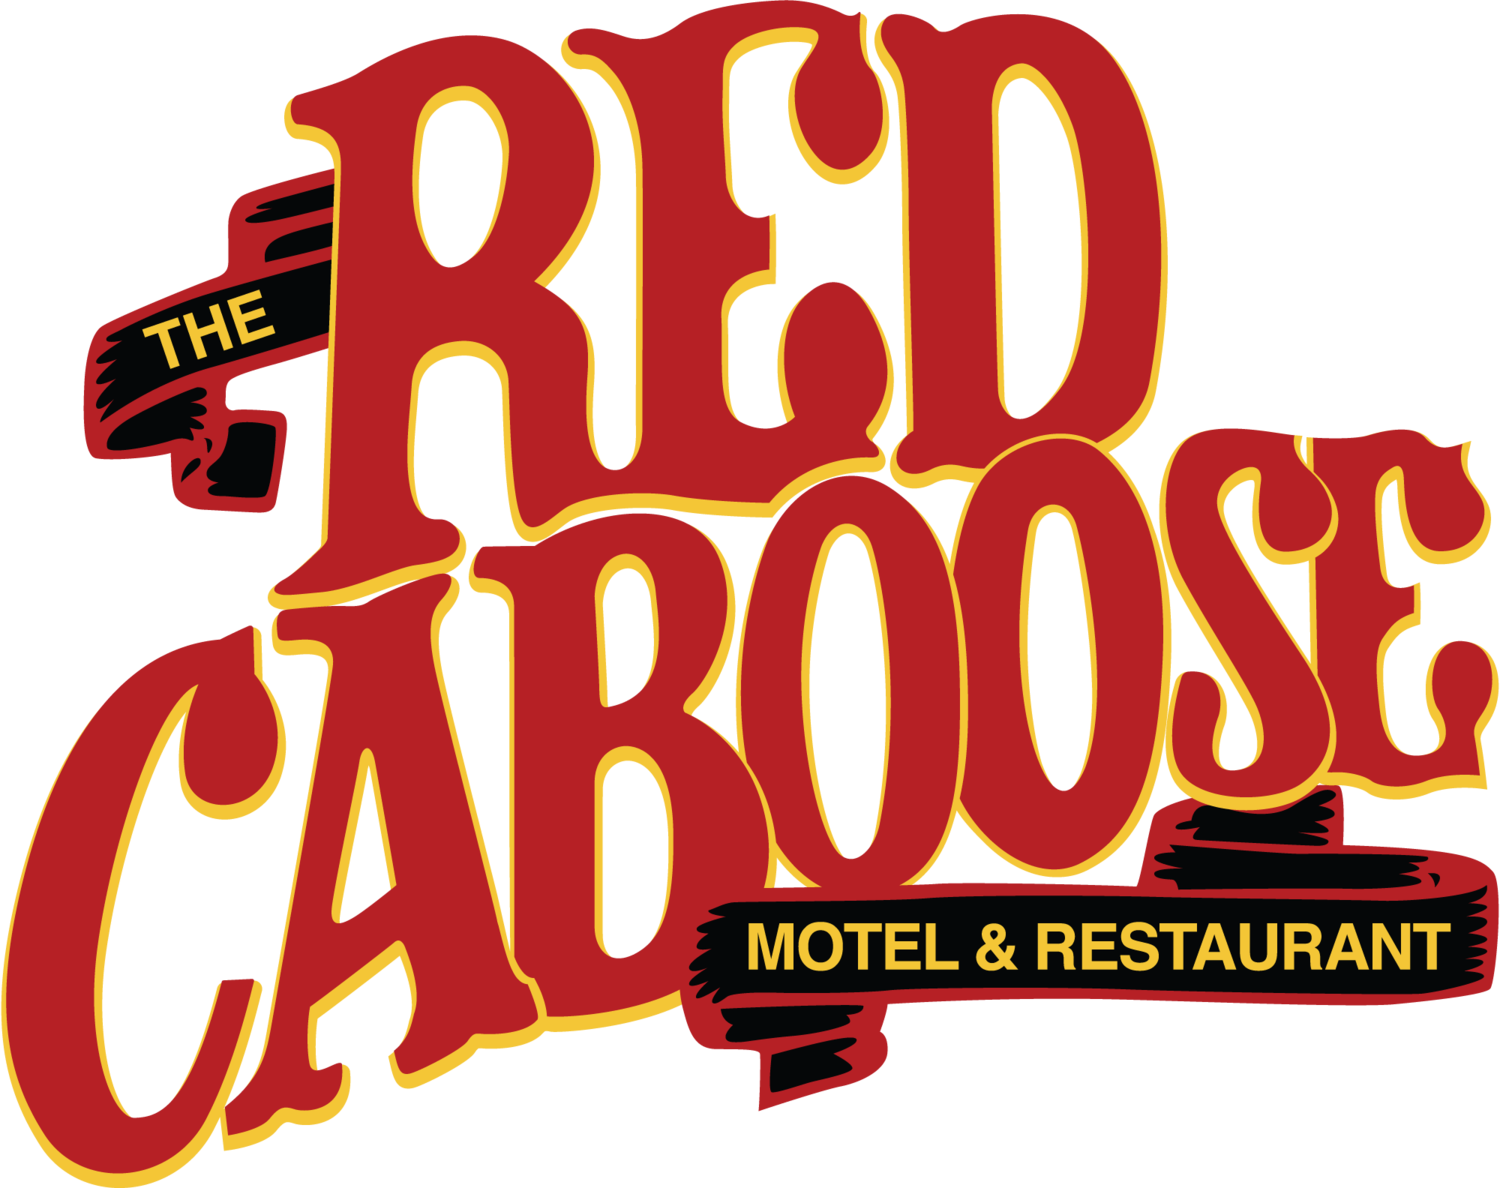 casey jones' restaurant — red caboose motel